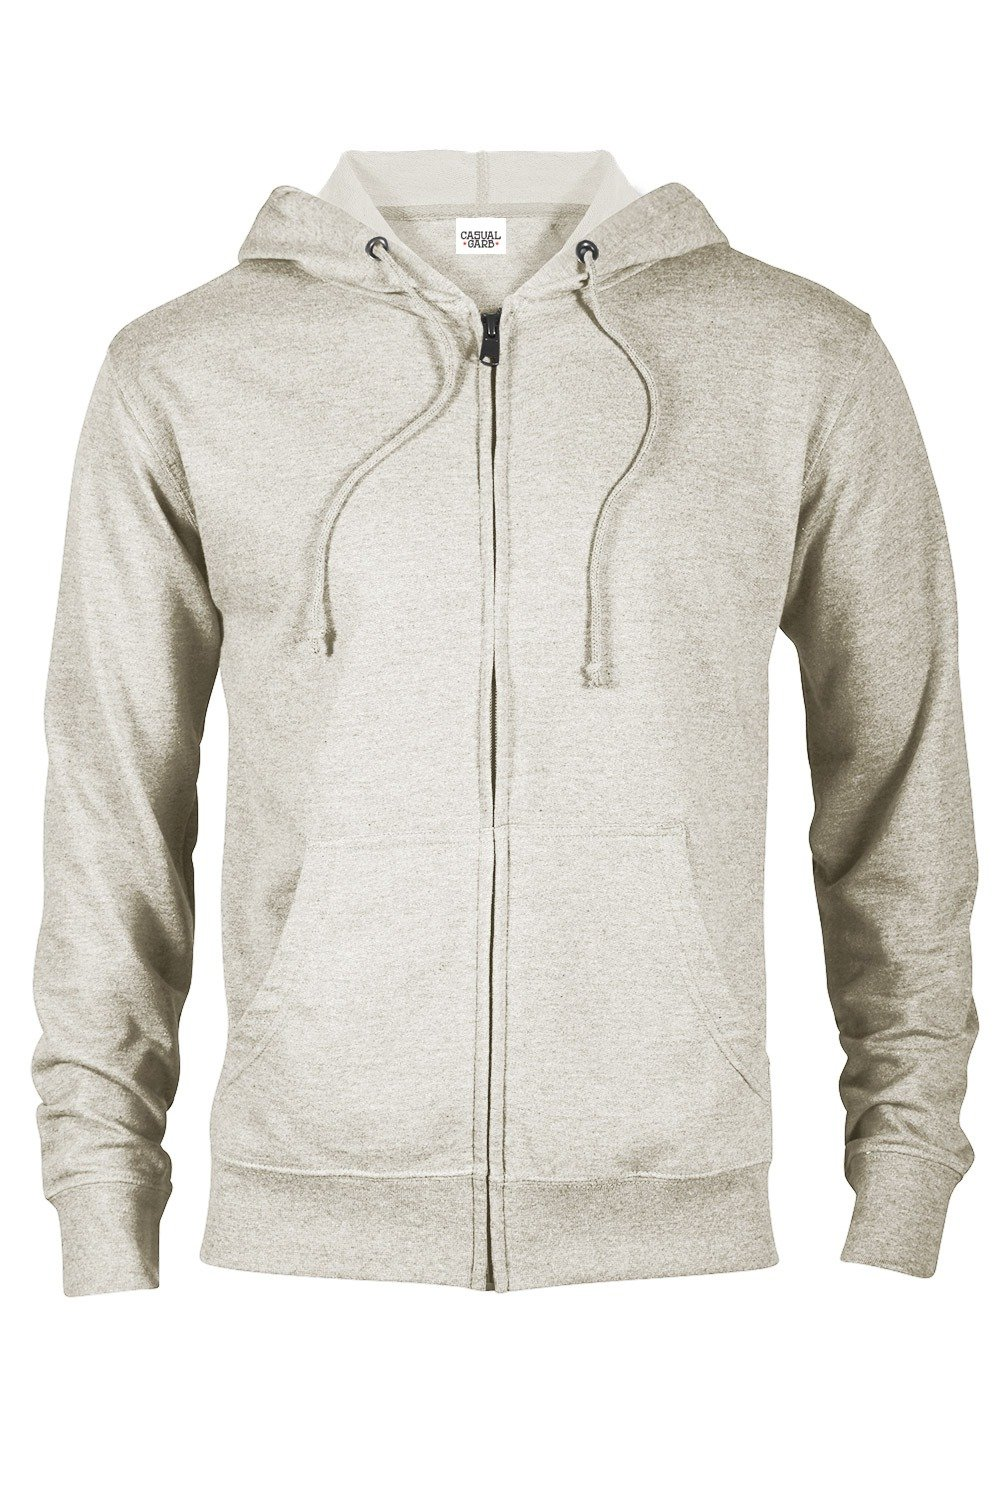 Casual Garb Hoodies for Men Heather French Terry